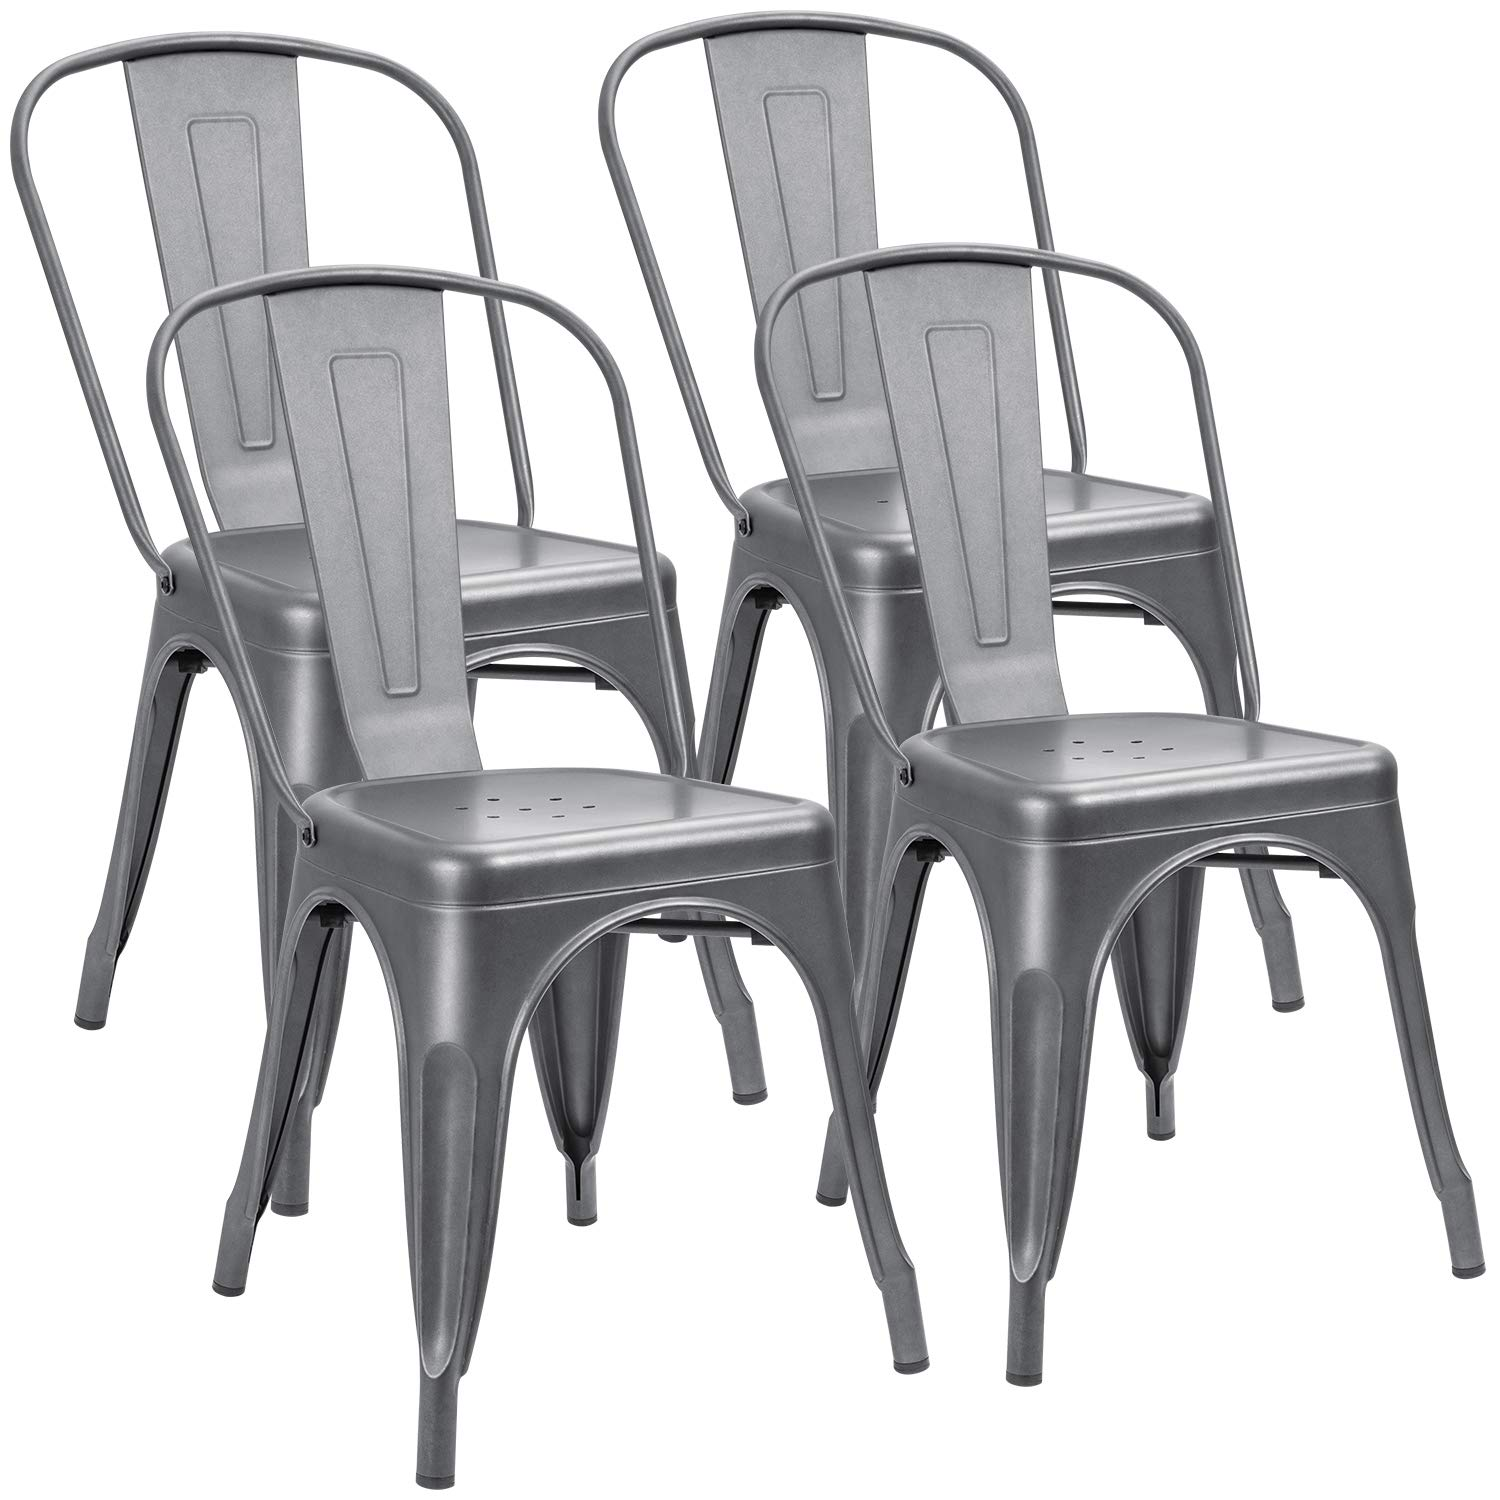 Furniwell Metal Dining Chairs Indoor-Outdoor Use Stackable Kitchen Chair Trattoria Side Chic Dining Bistro Cafe Chairs with Back Set of 4 (Gray)